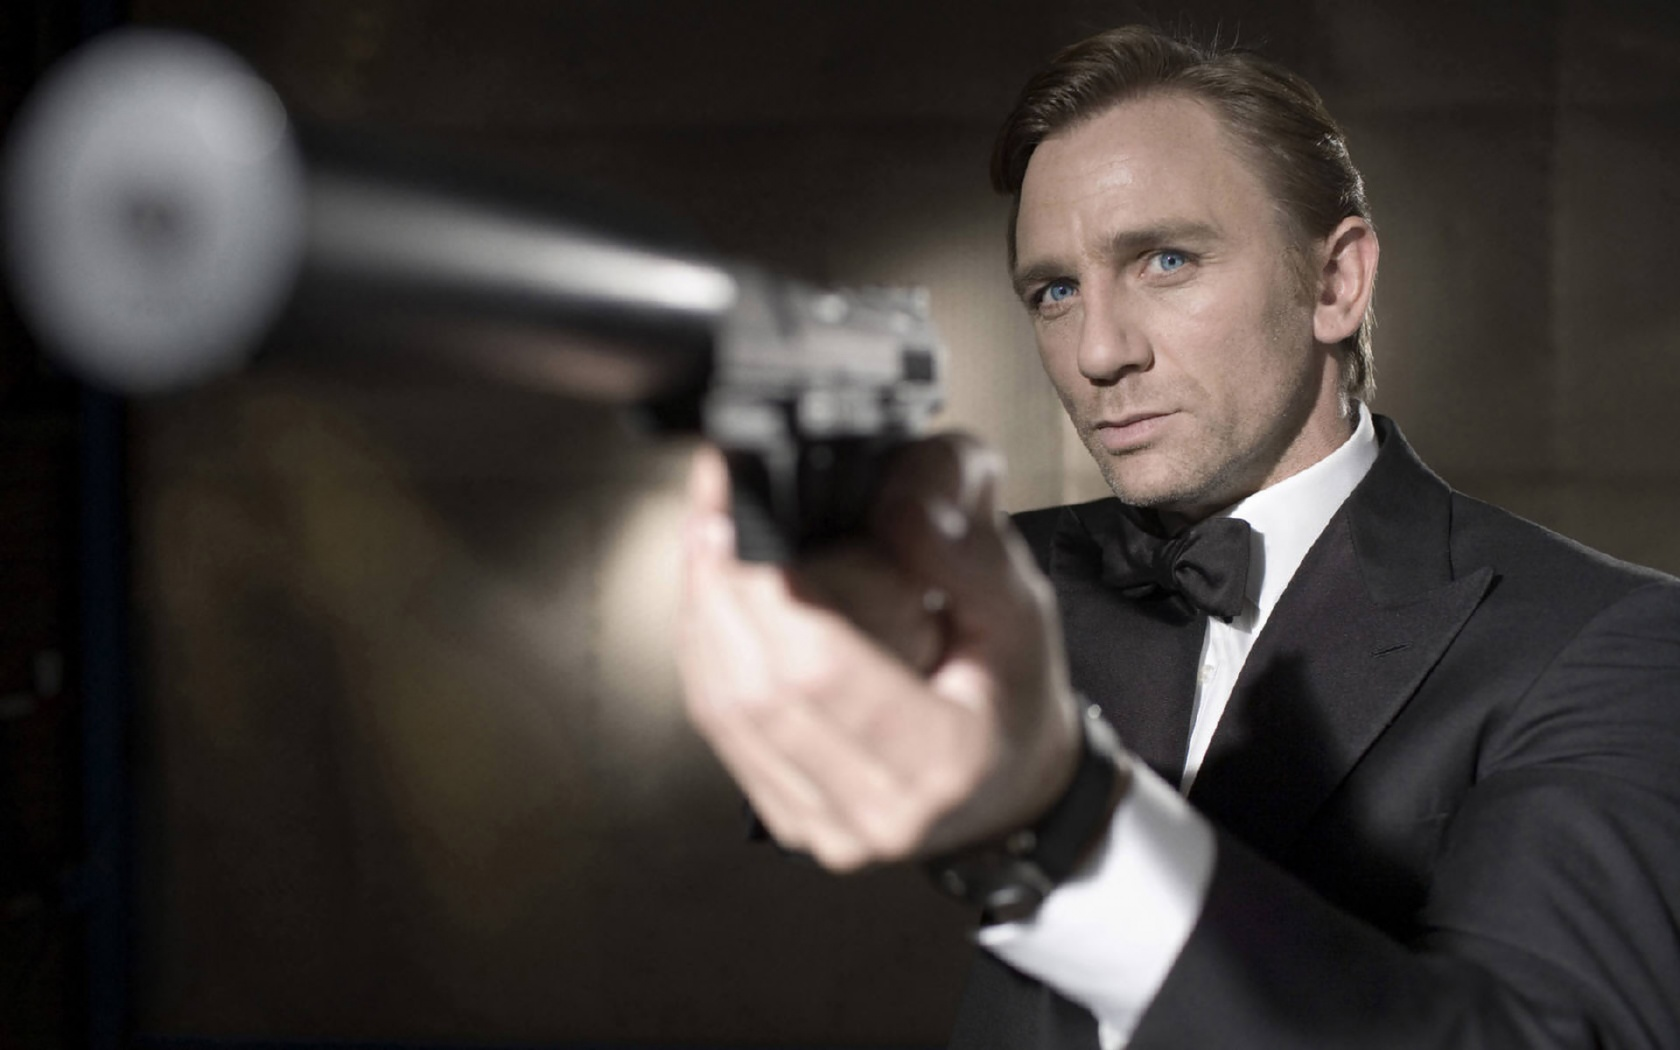 james bond schools technology sector in skyfall the tibco blog